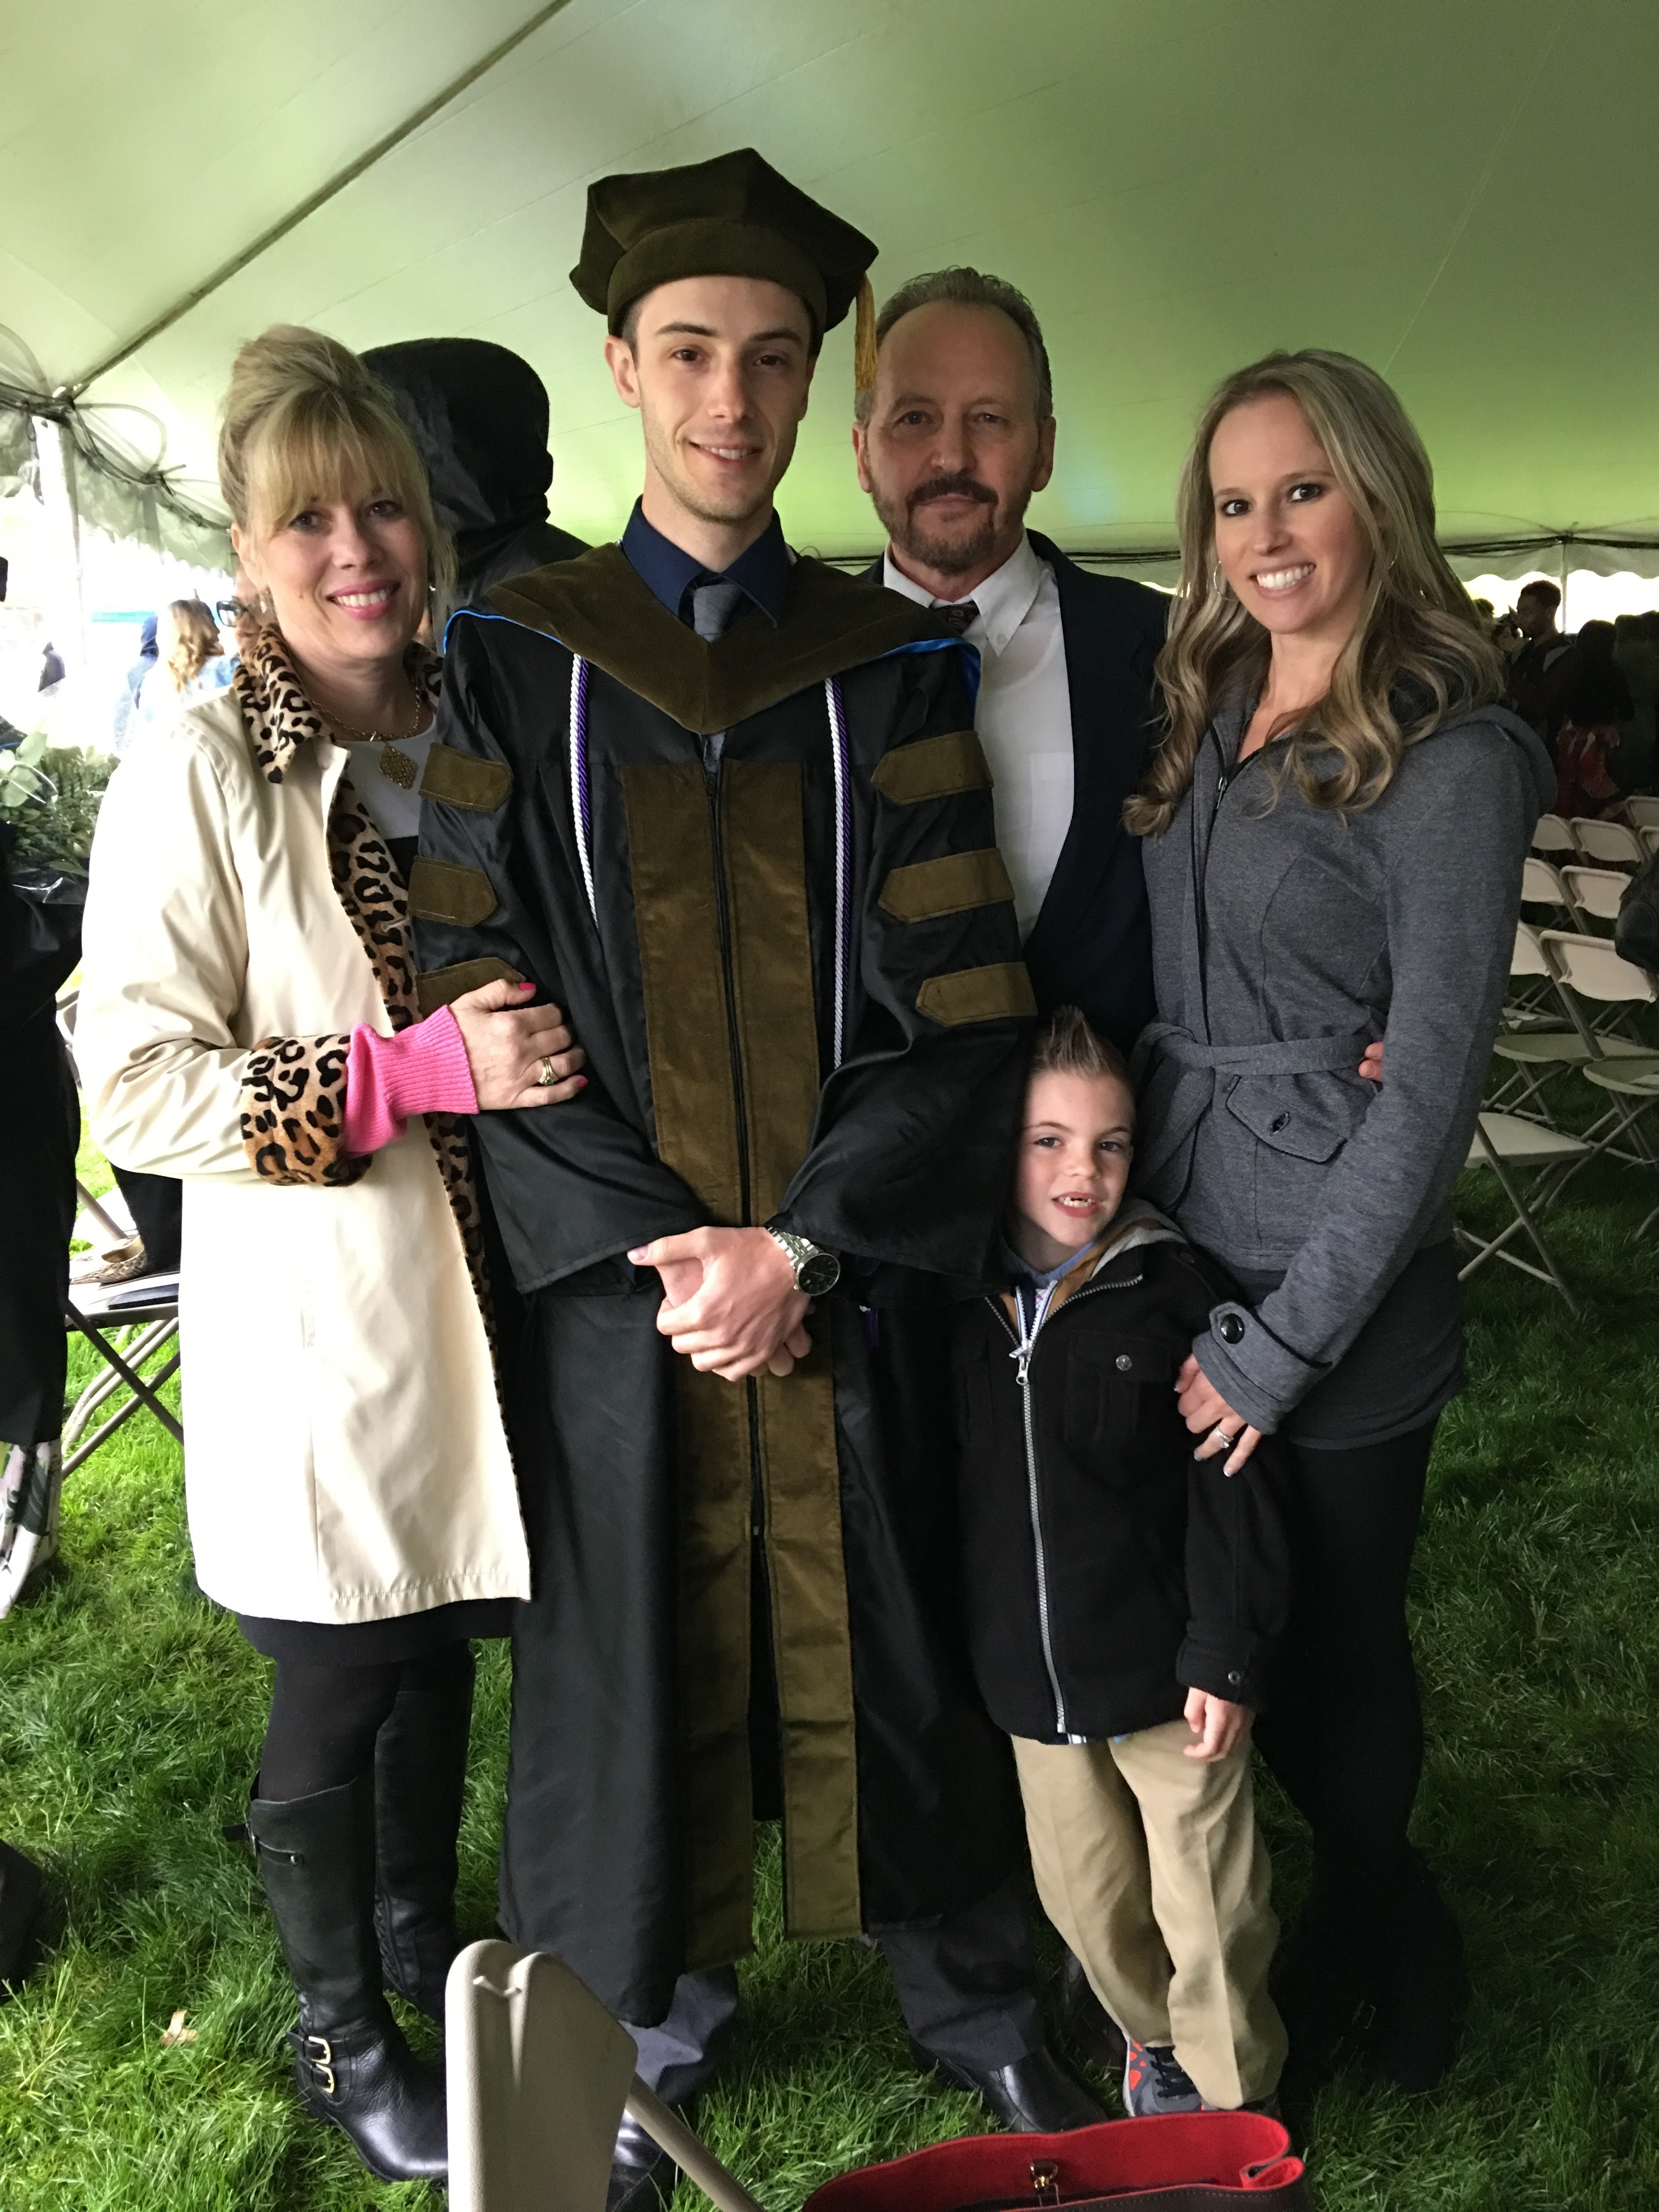 Stephanie Zema Bruneau Class of 1974 standing under an event tent with her son William when he received his Ph.D She is also with her husband, one of her daughters and one of her grandchildren.